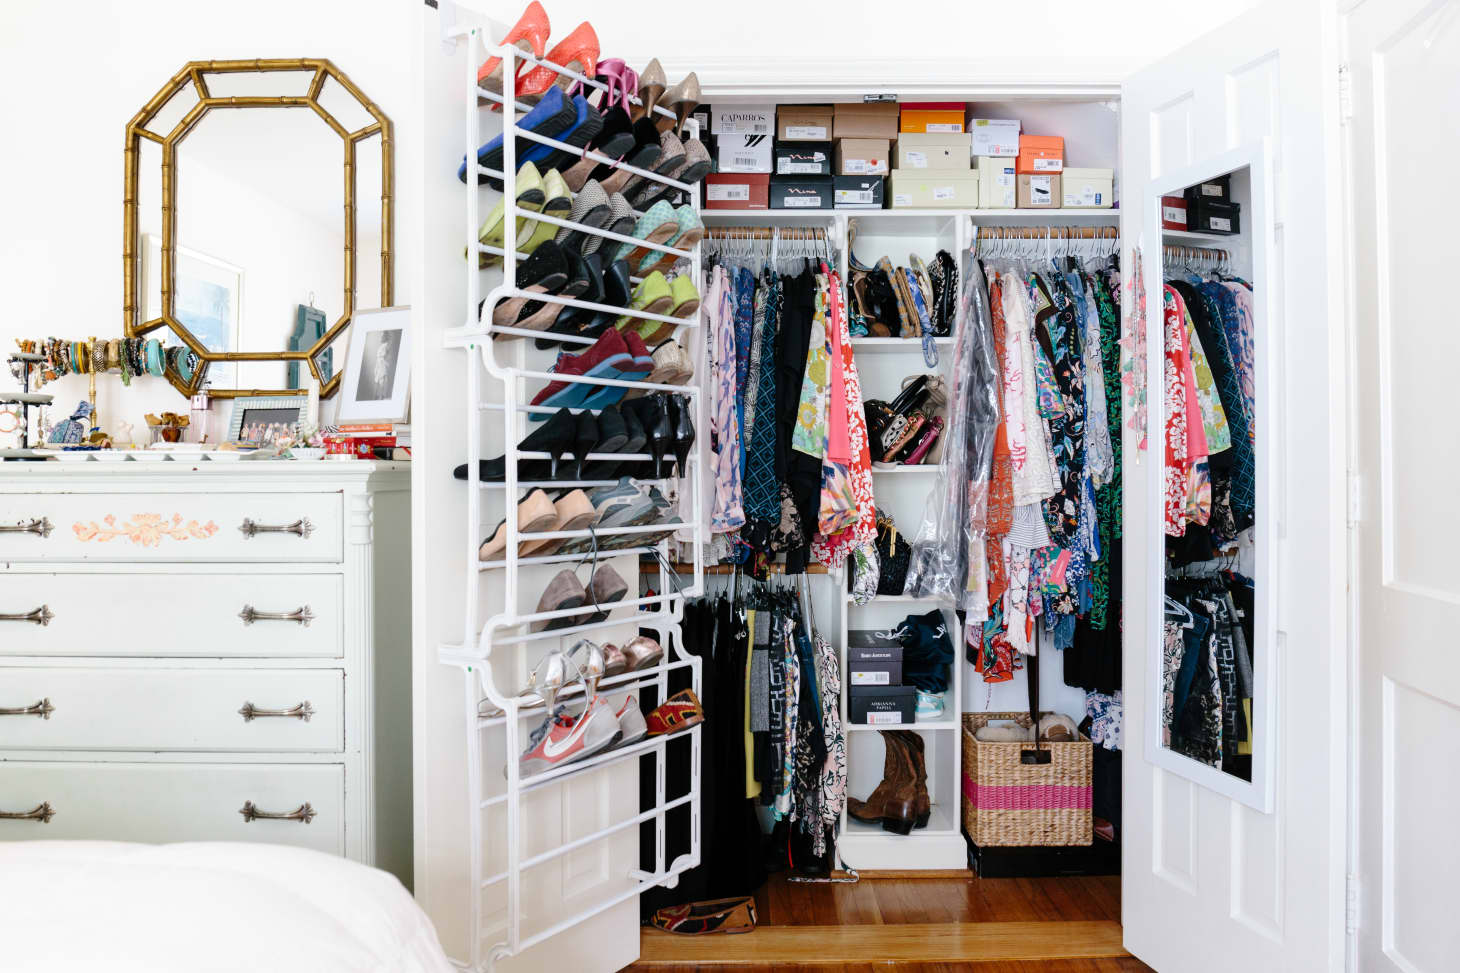 Closet Storage Ideas - Small Closet Organization | Apartment ...